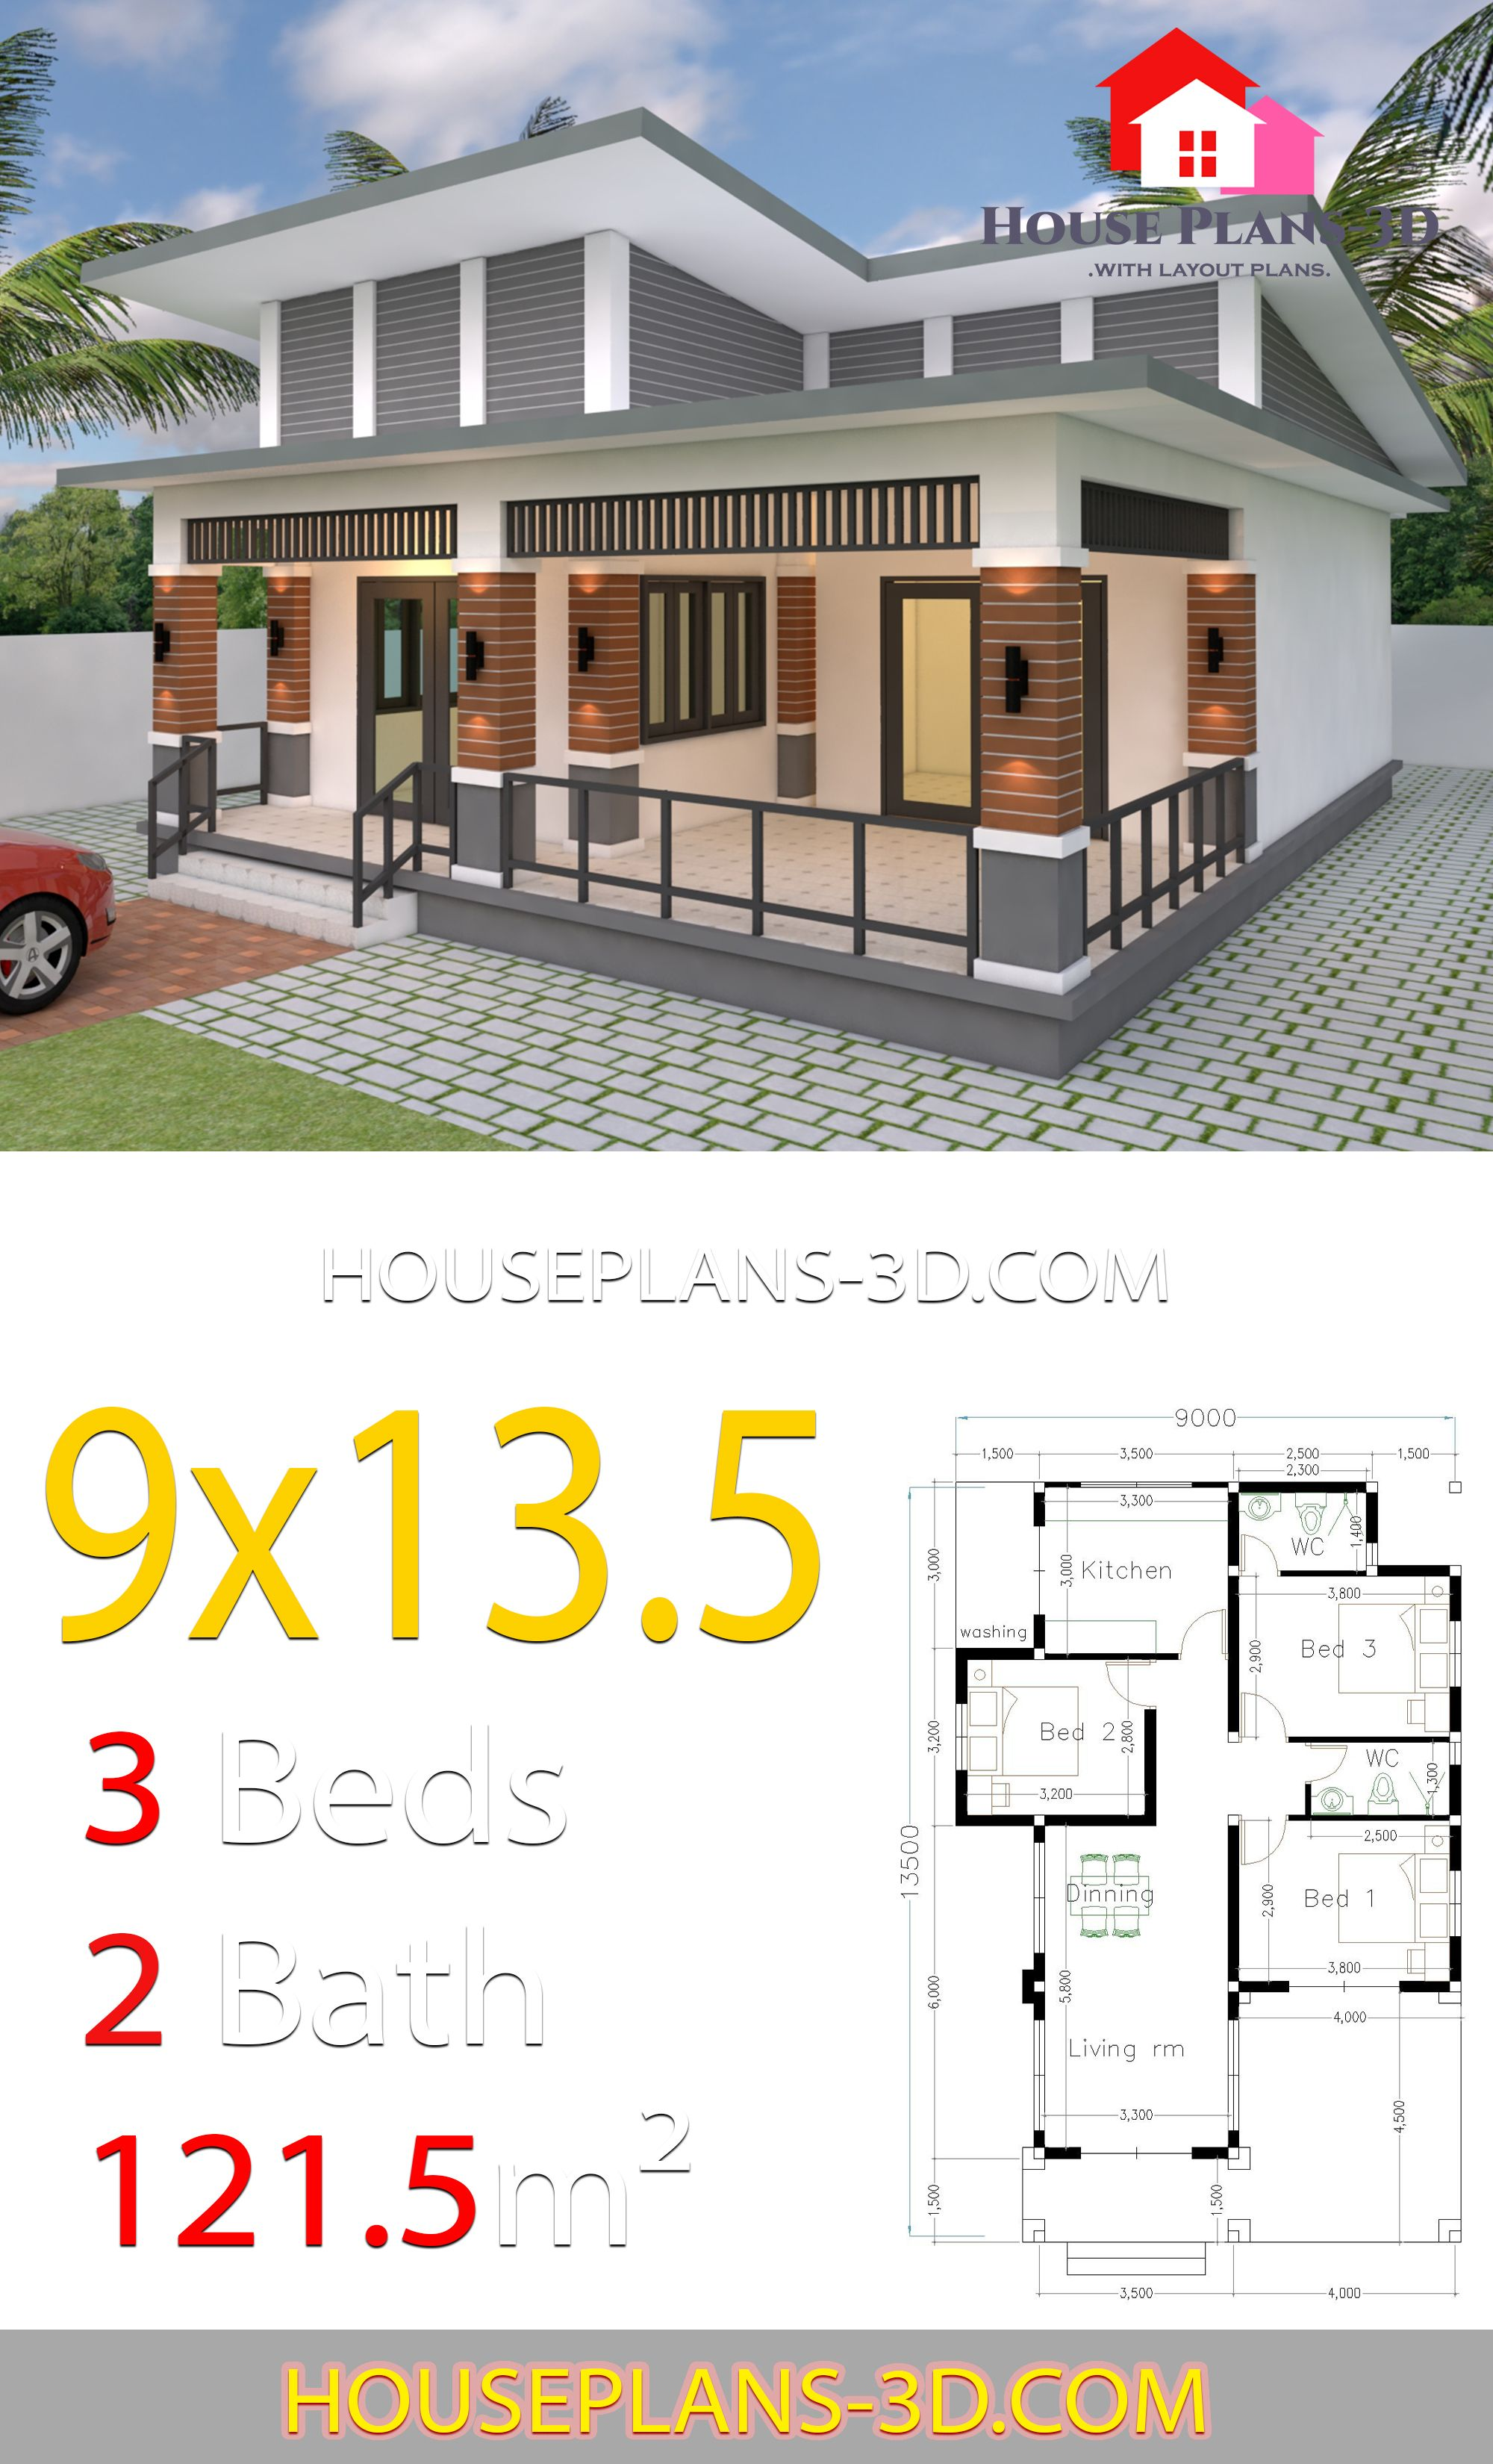 House Design 9x13 5 With 3 Bedrooms Slop Roof House Plans 3d House Plans My House Plans Modern Style House Plans